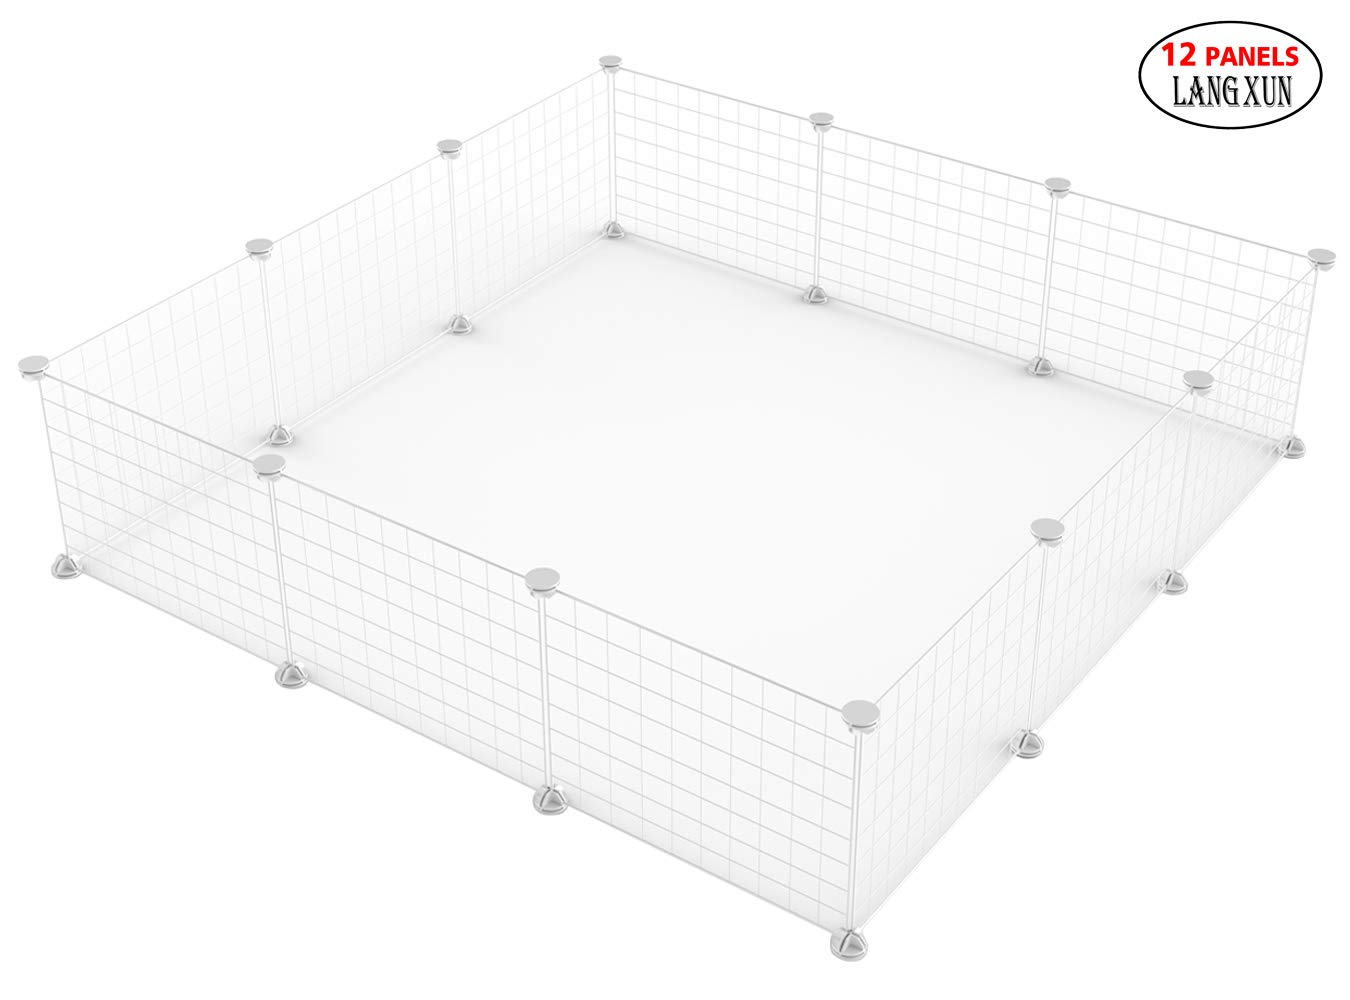 18\ LANGXUN 12pcs Metal Wire Storage Cubes Organizer, DIY Small Animal Cage for Rabbit, Guinea Pigs, Puppy   Pet Products Portable Metal Wire Yard Fence (18  H)